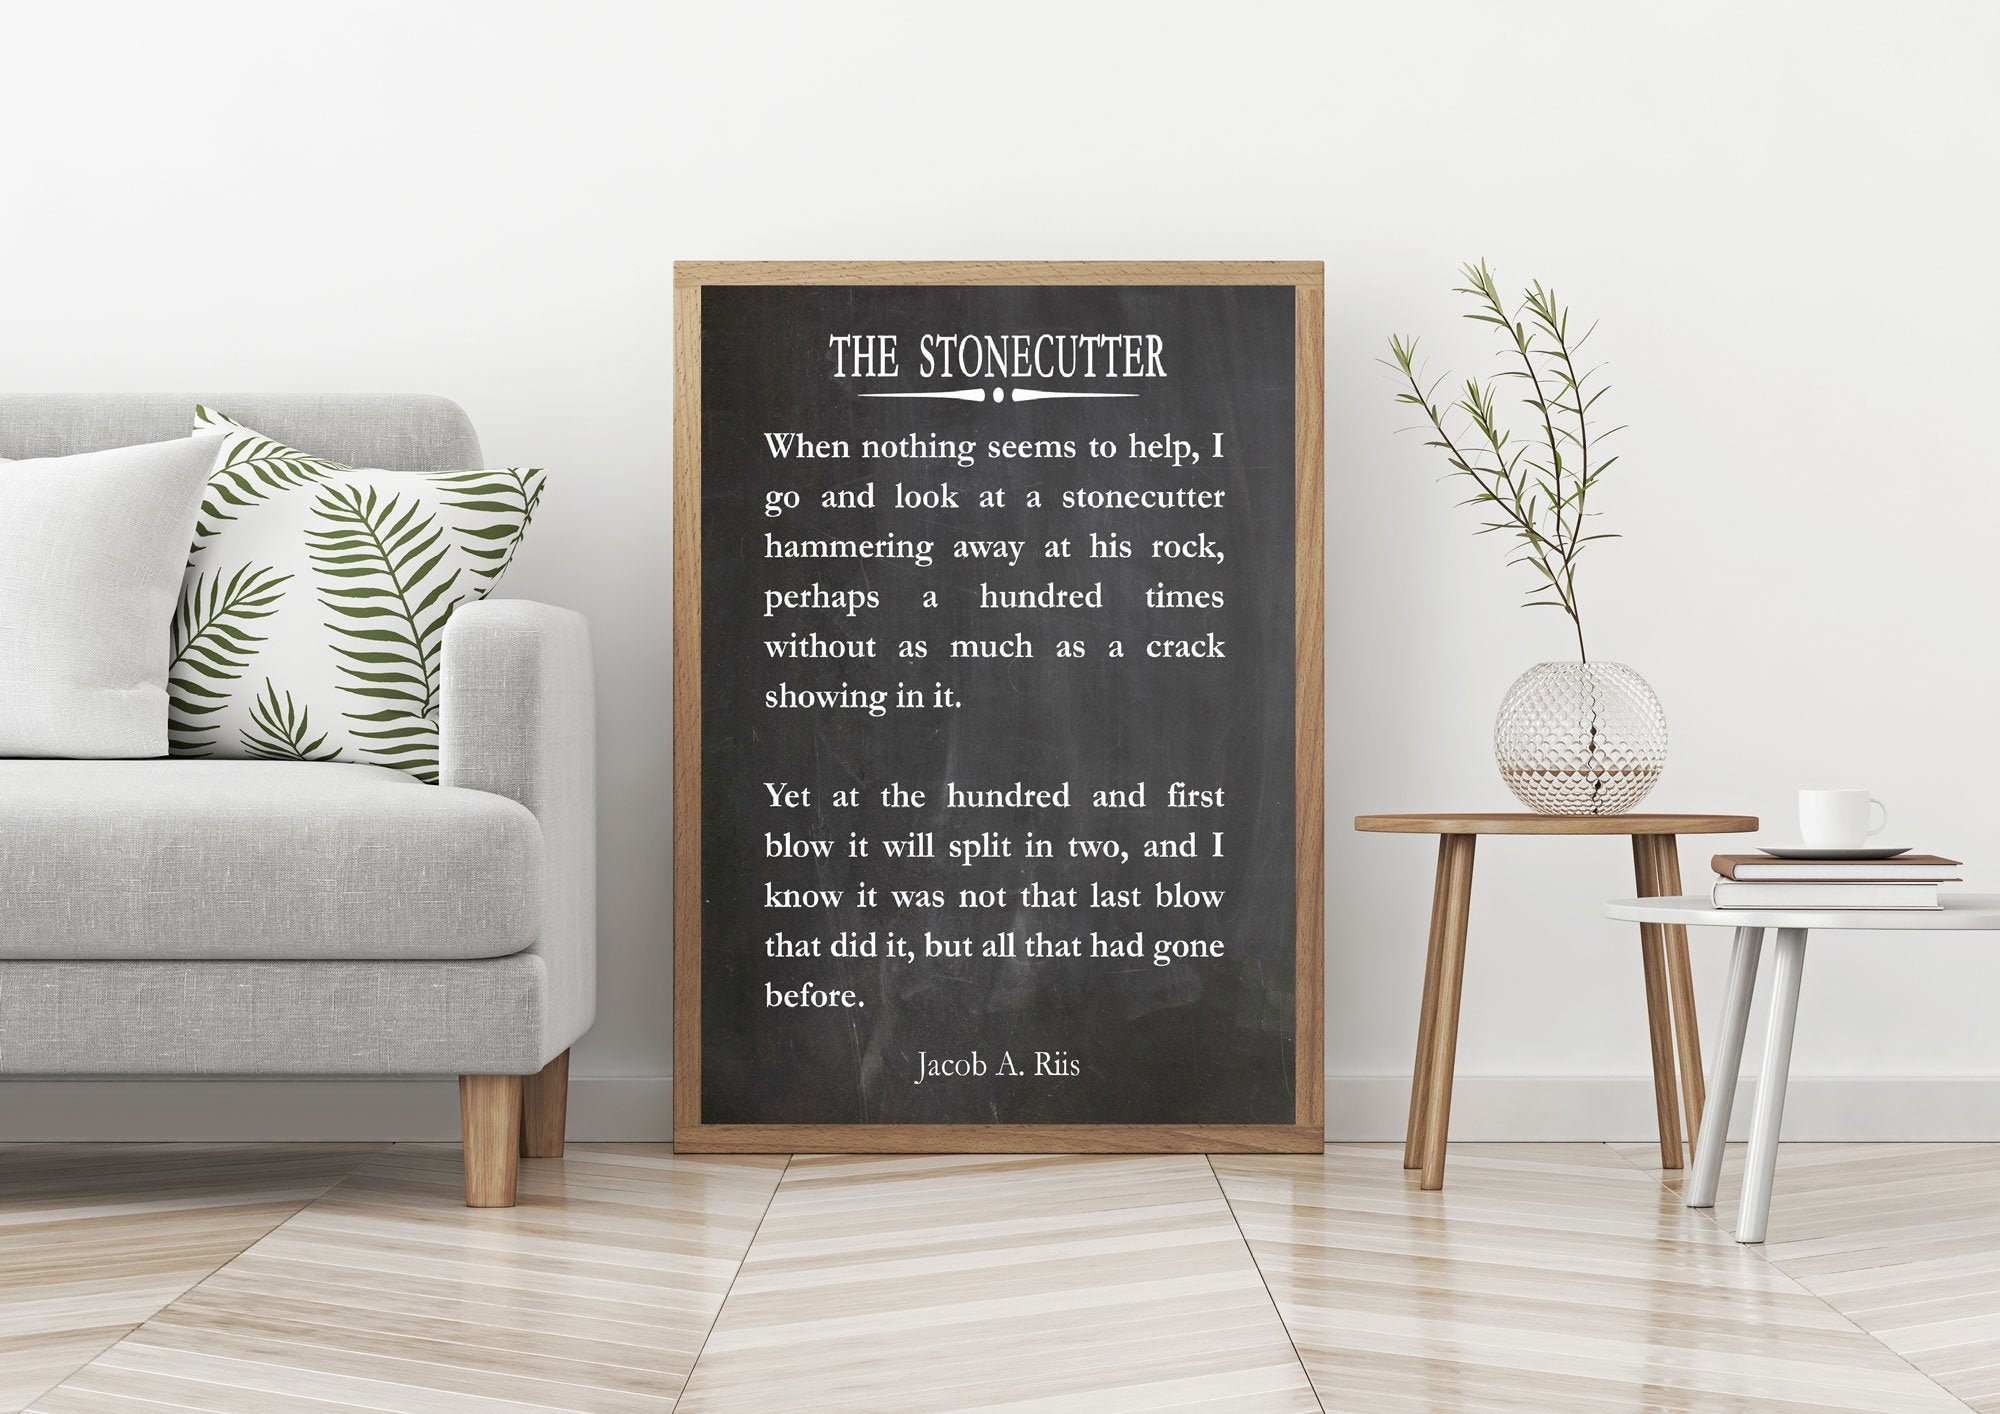 The Stonecutter by Jacob Riis Motivational Sports Quote Inspiring Wall Art